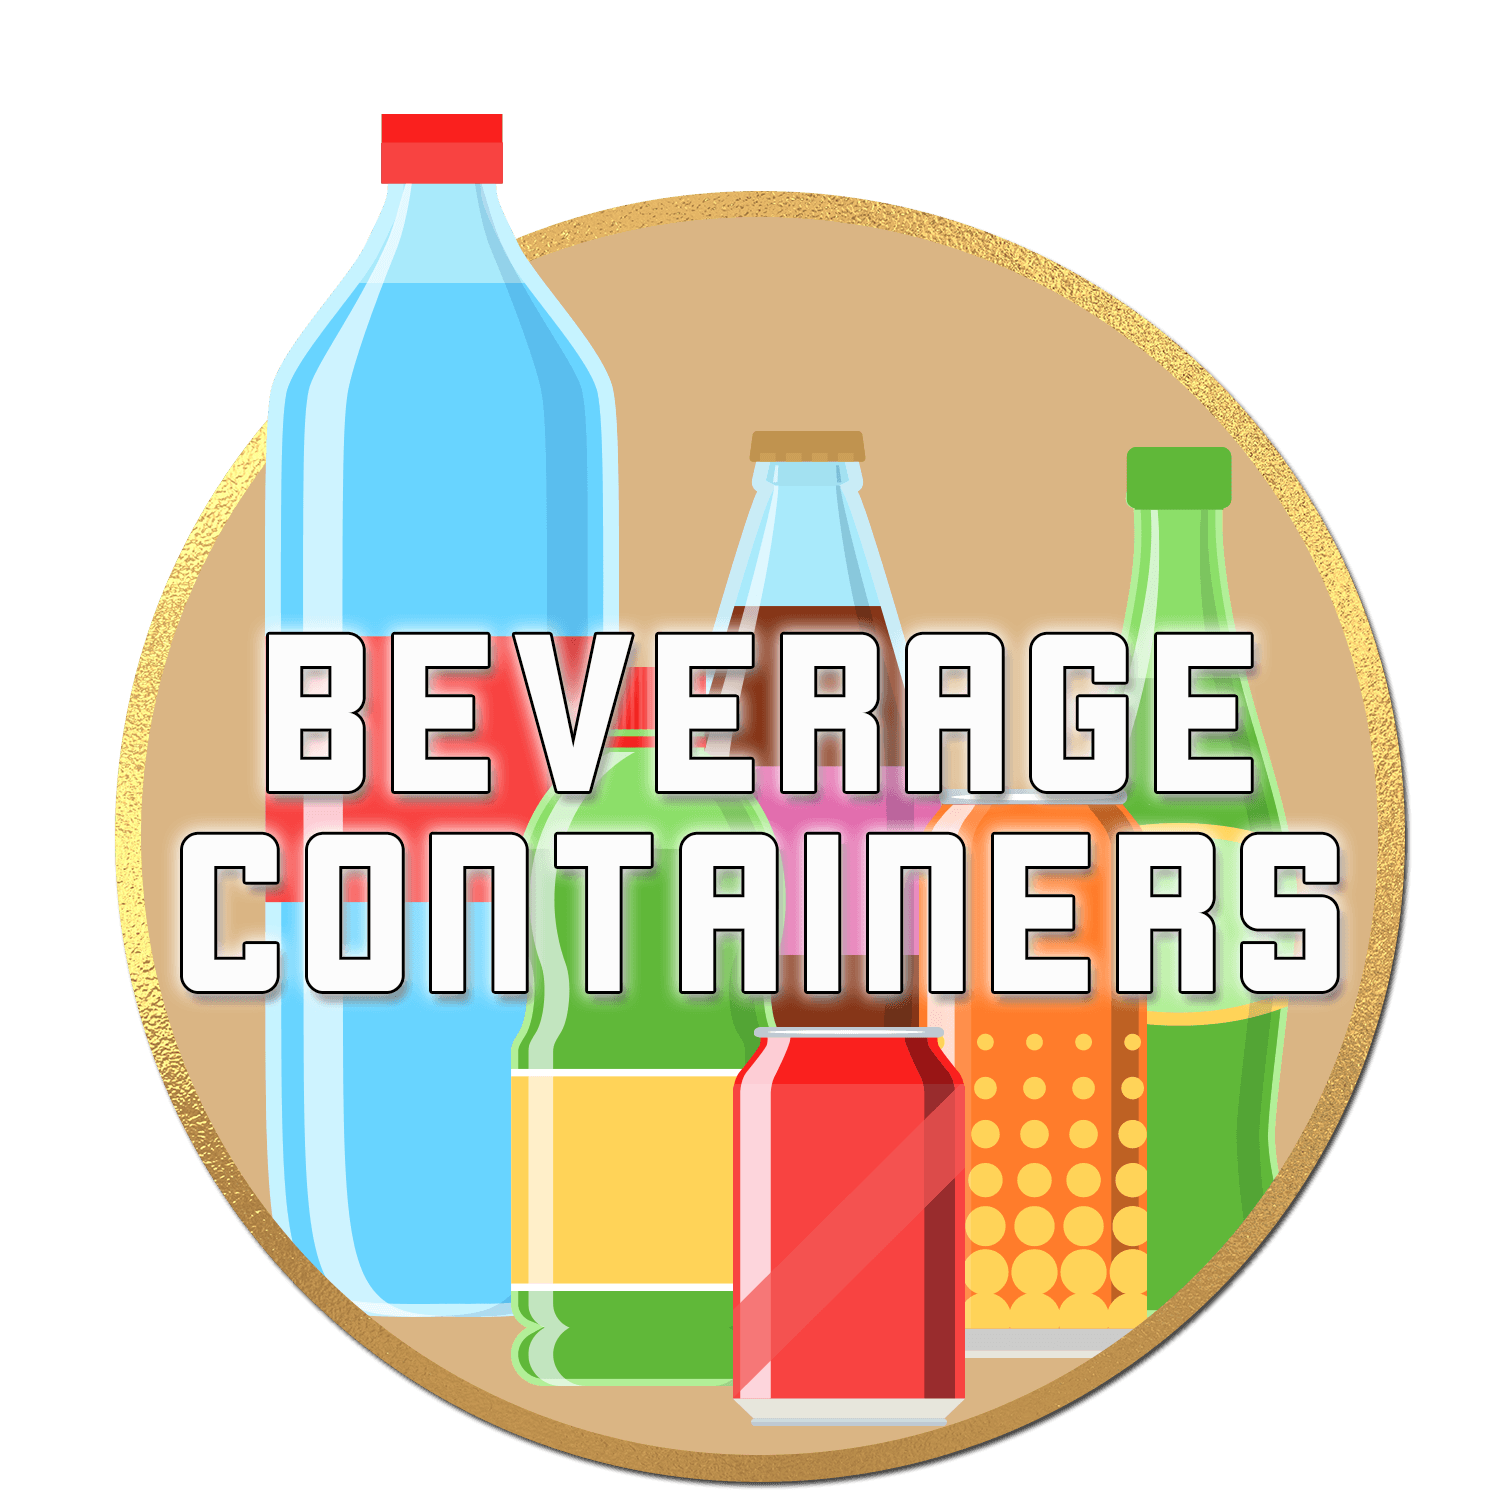 Beverage-Containers-Button